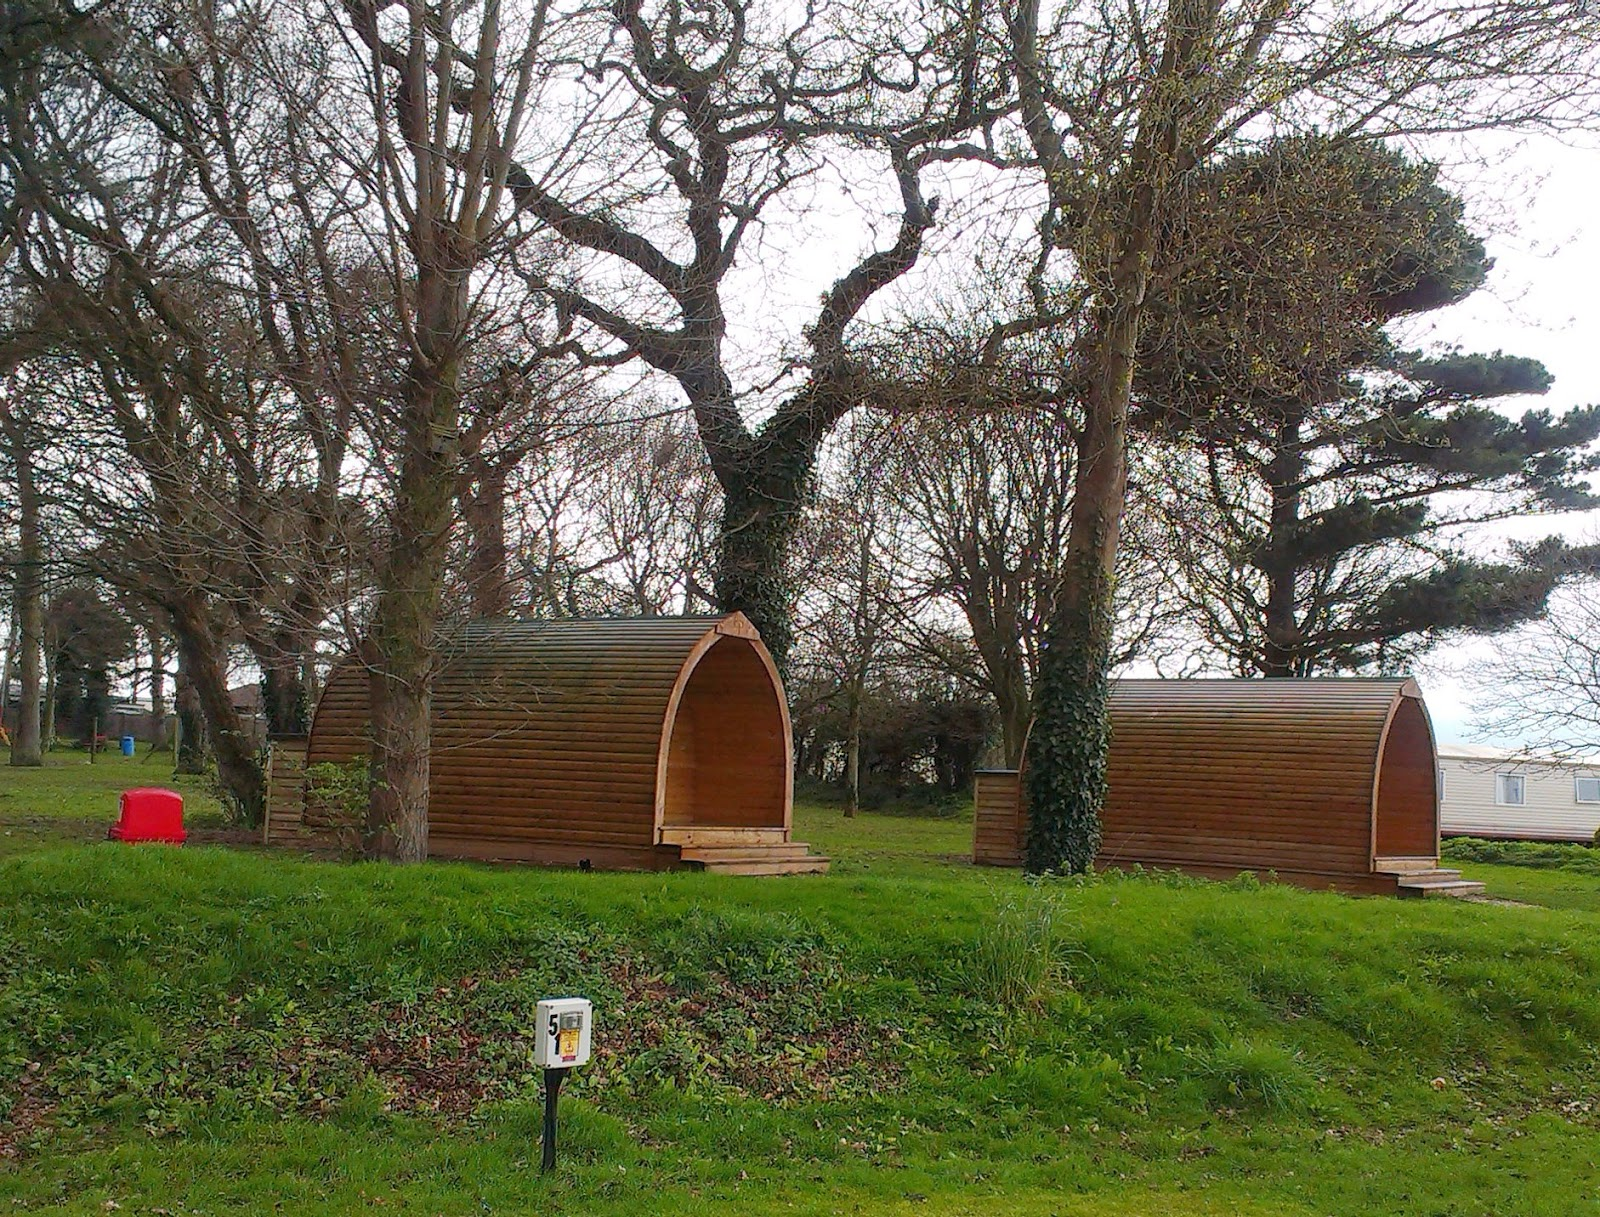 Camping pods at Blue Anchor